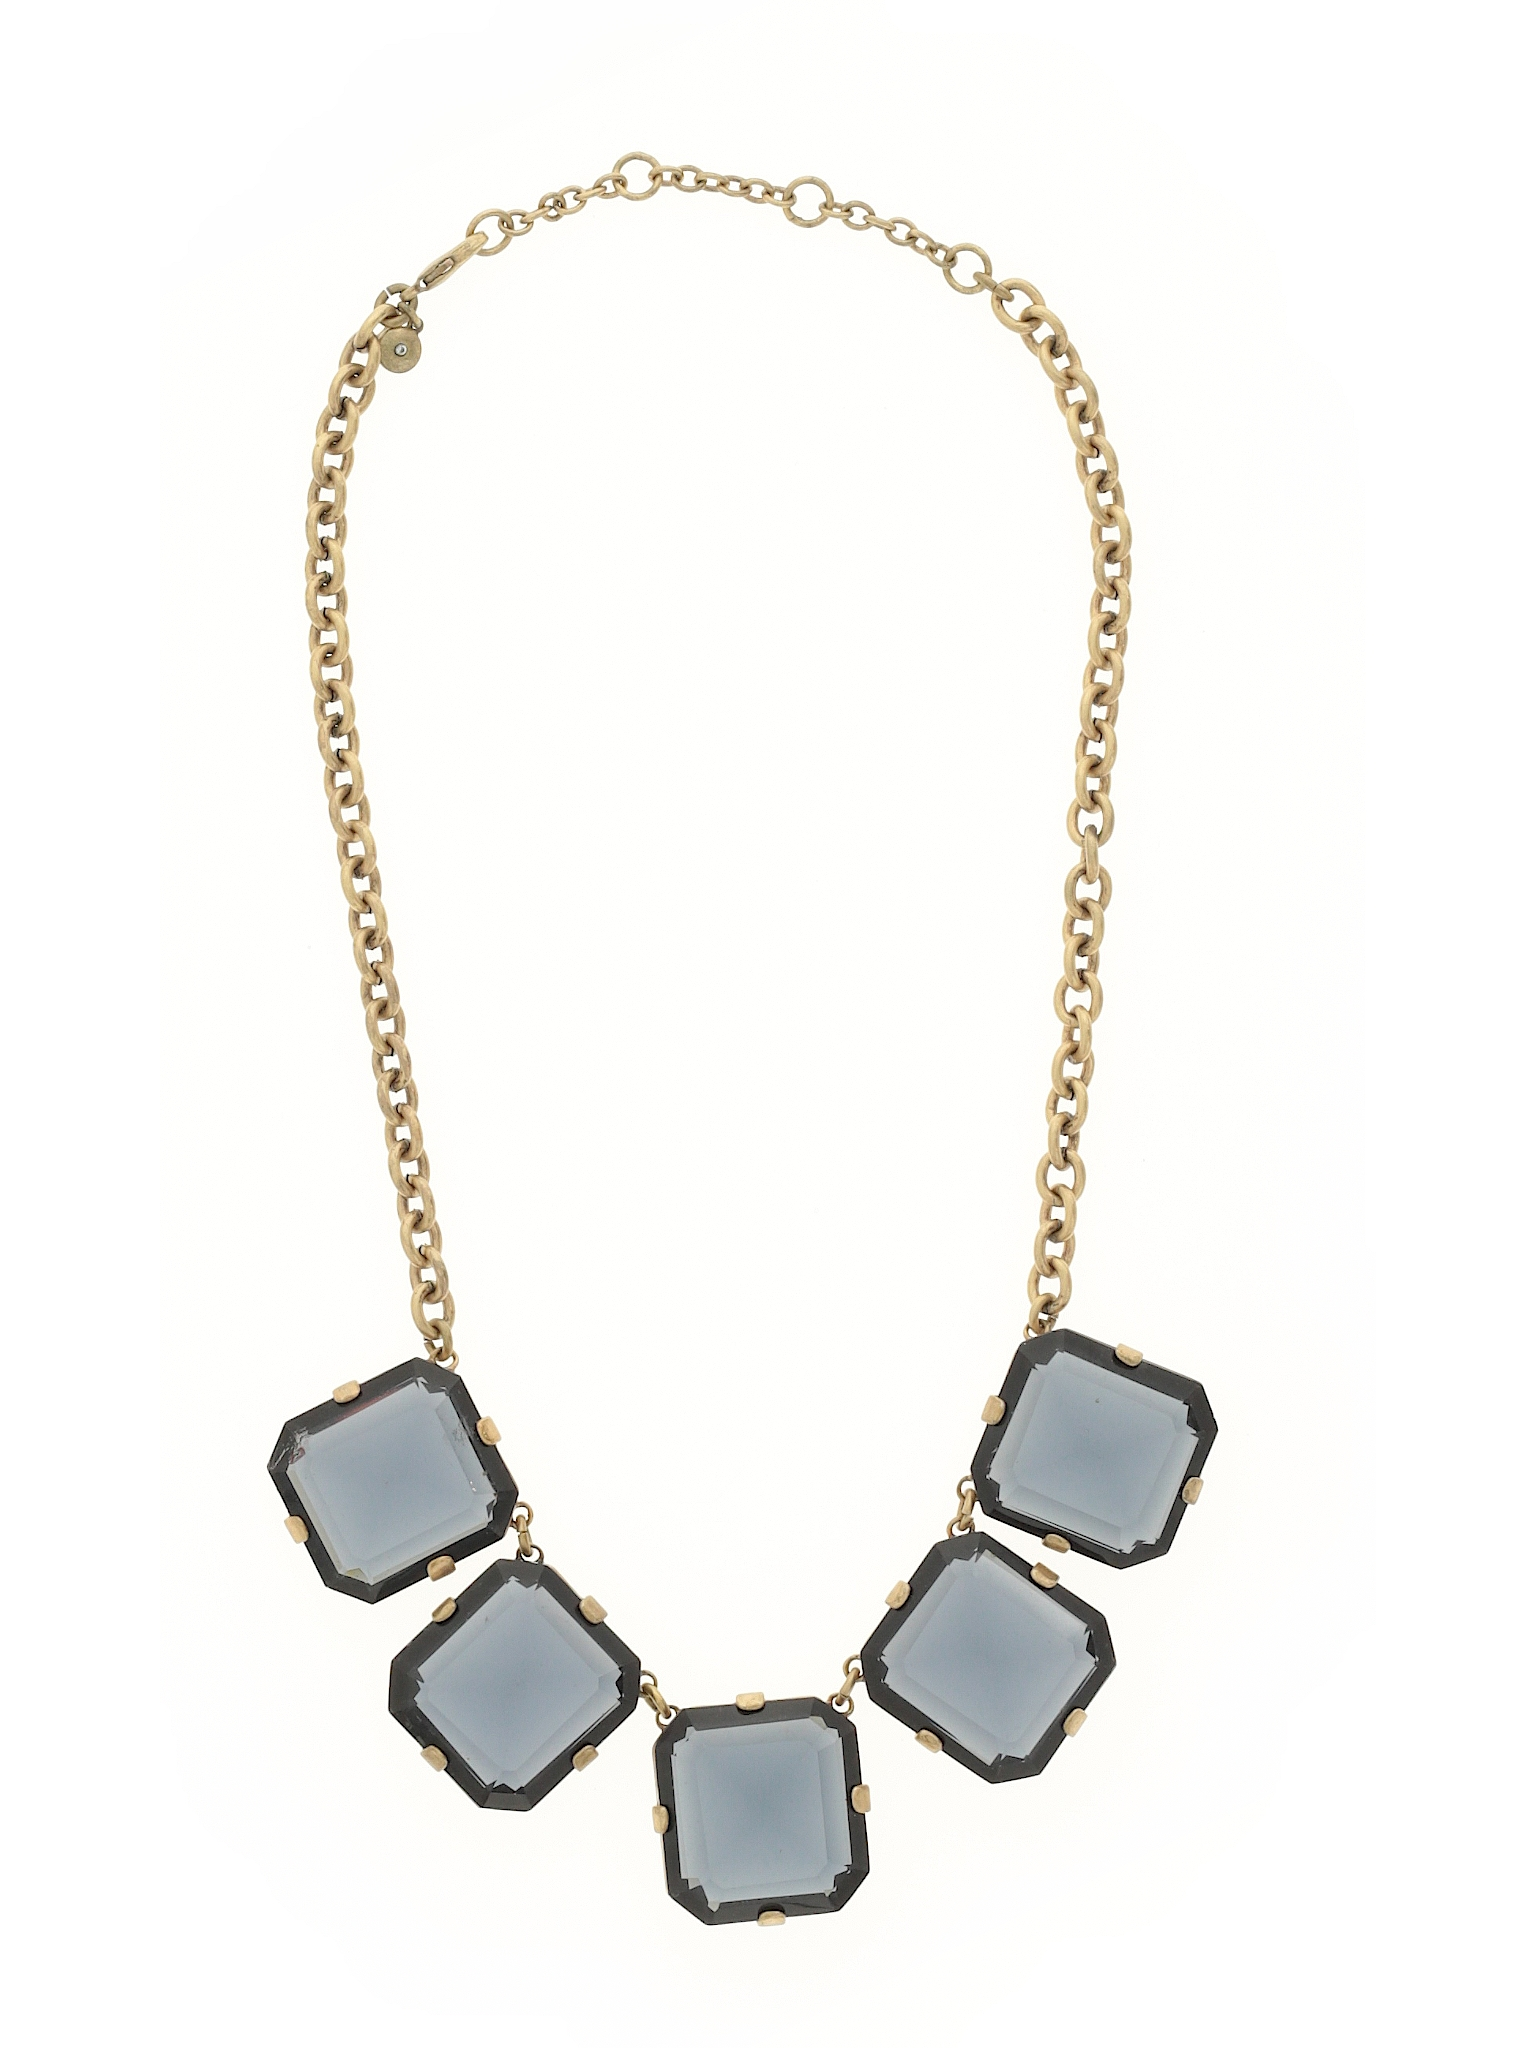 J crew necklace size gold womenus clothing